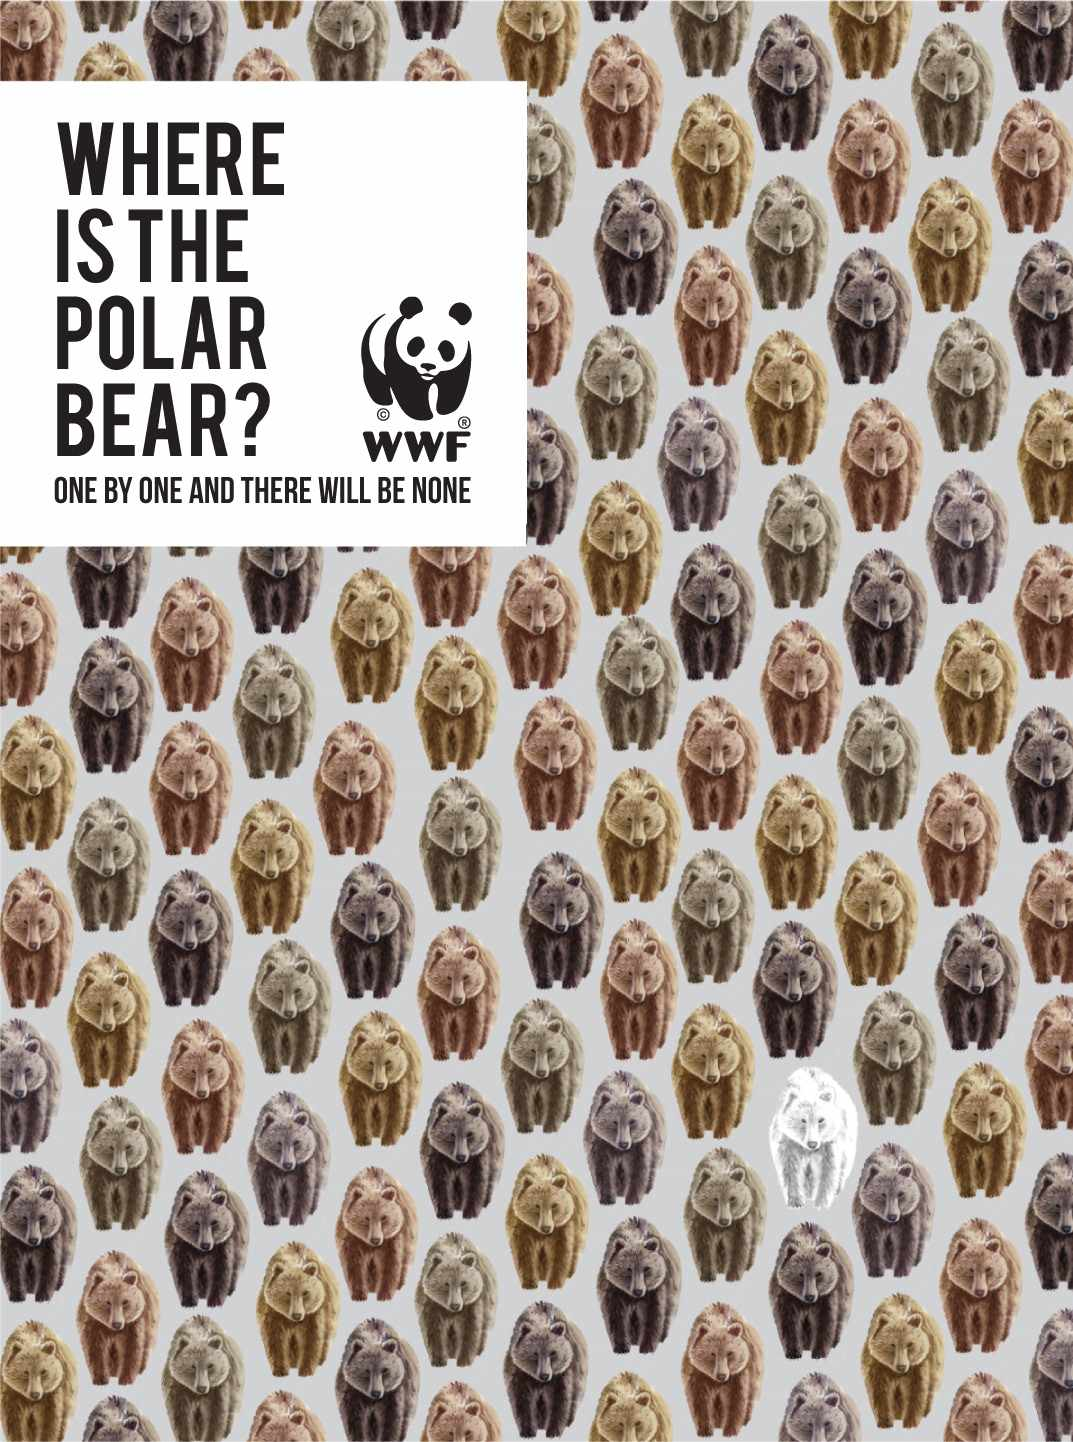 WWF Print Ad - One by One There Will be None, 2